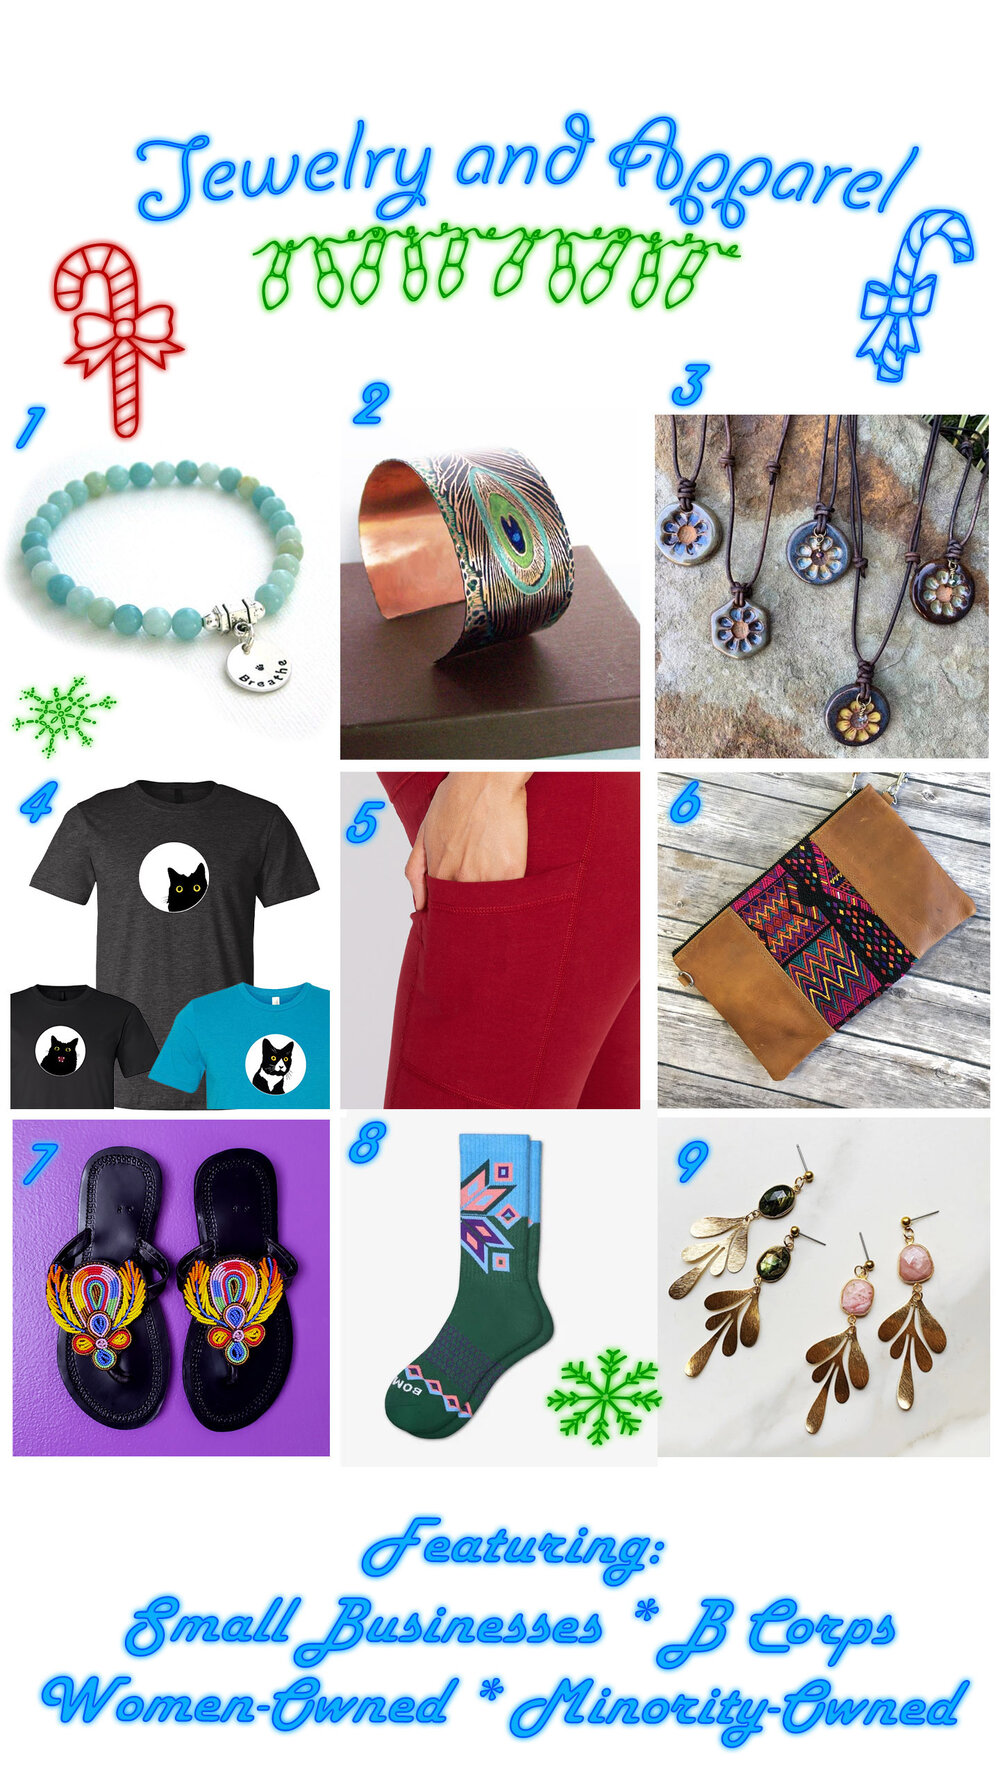 jewelry and apparel from small businesses,  women and minority owned, clean living gift guide